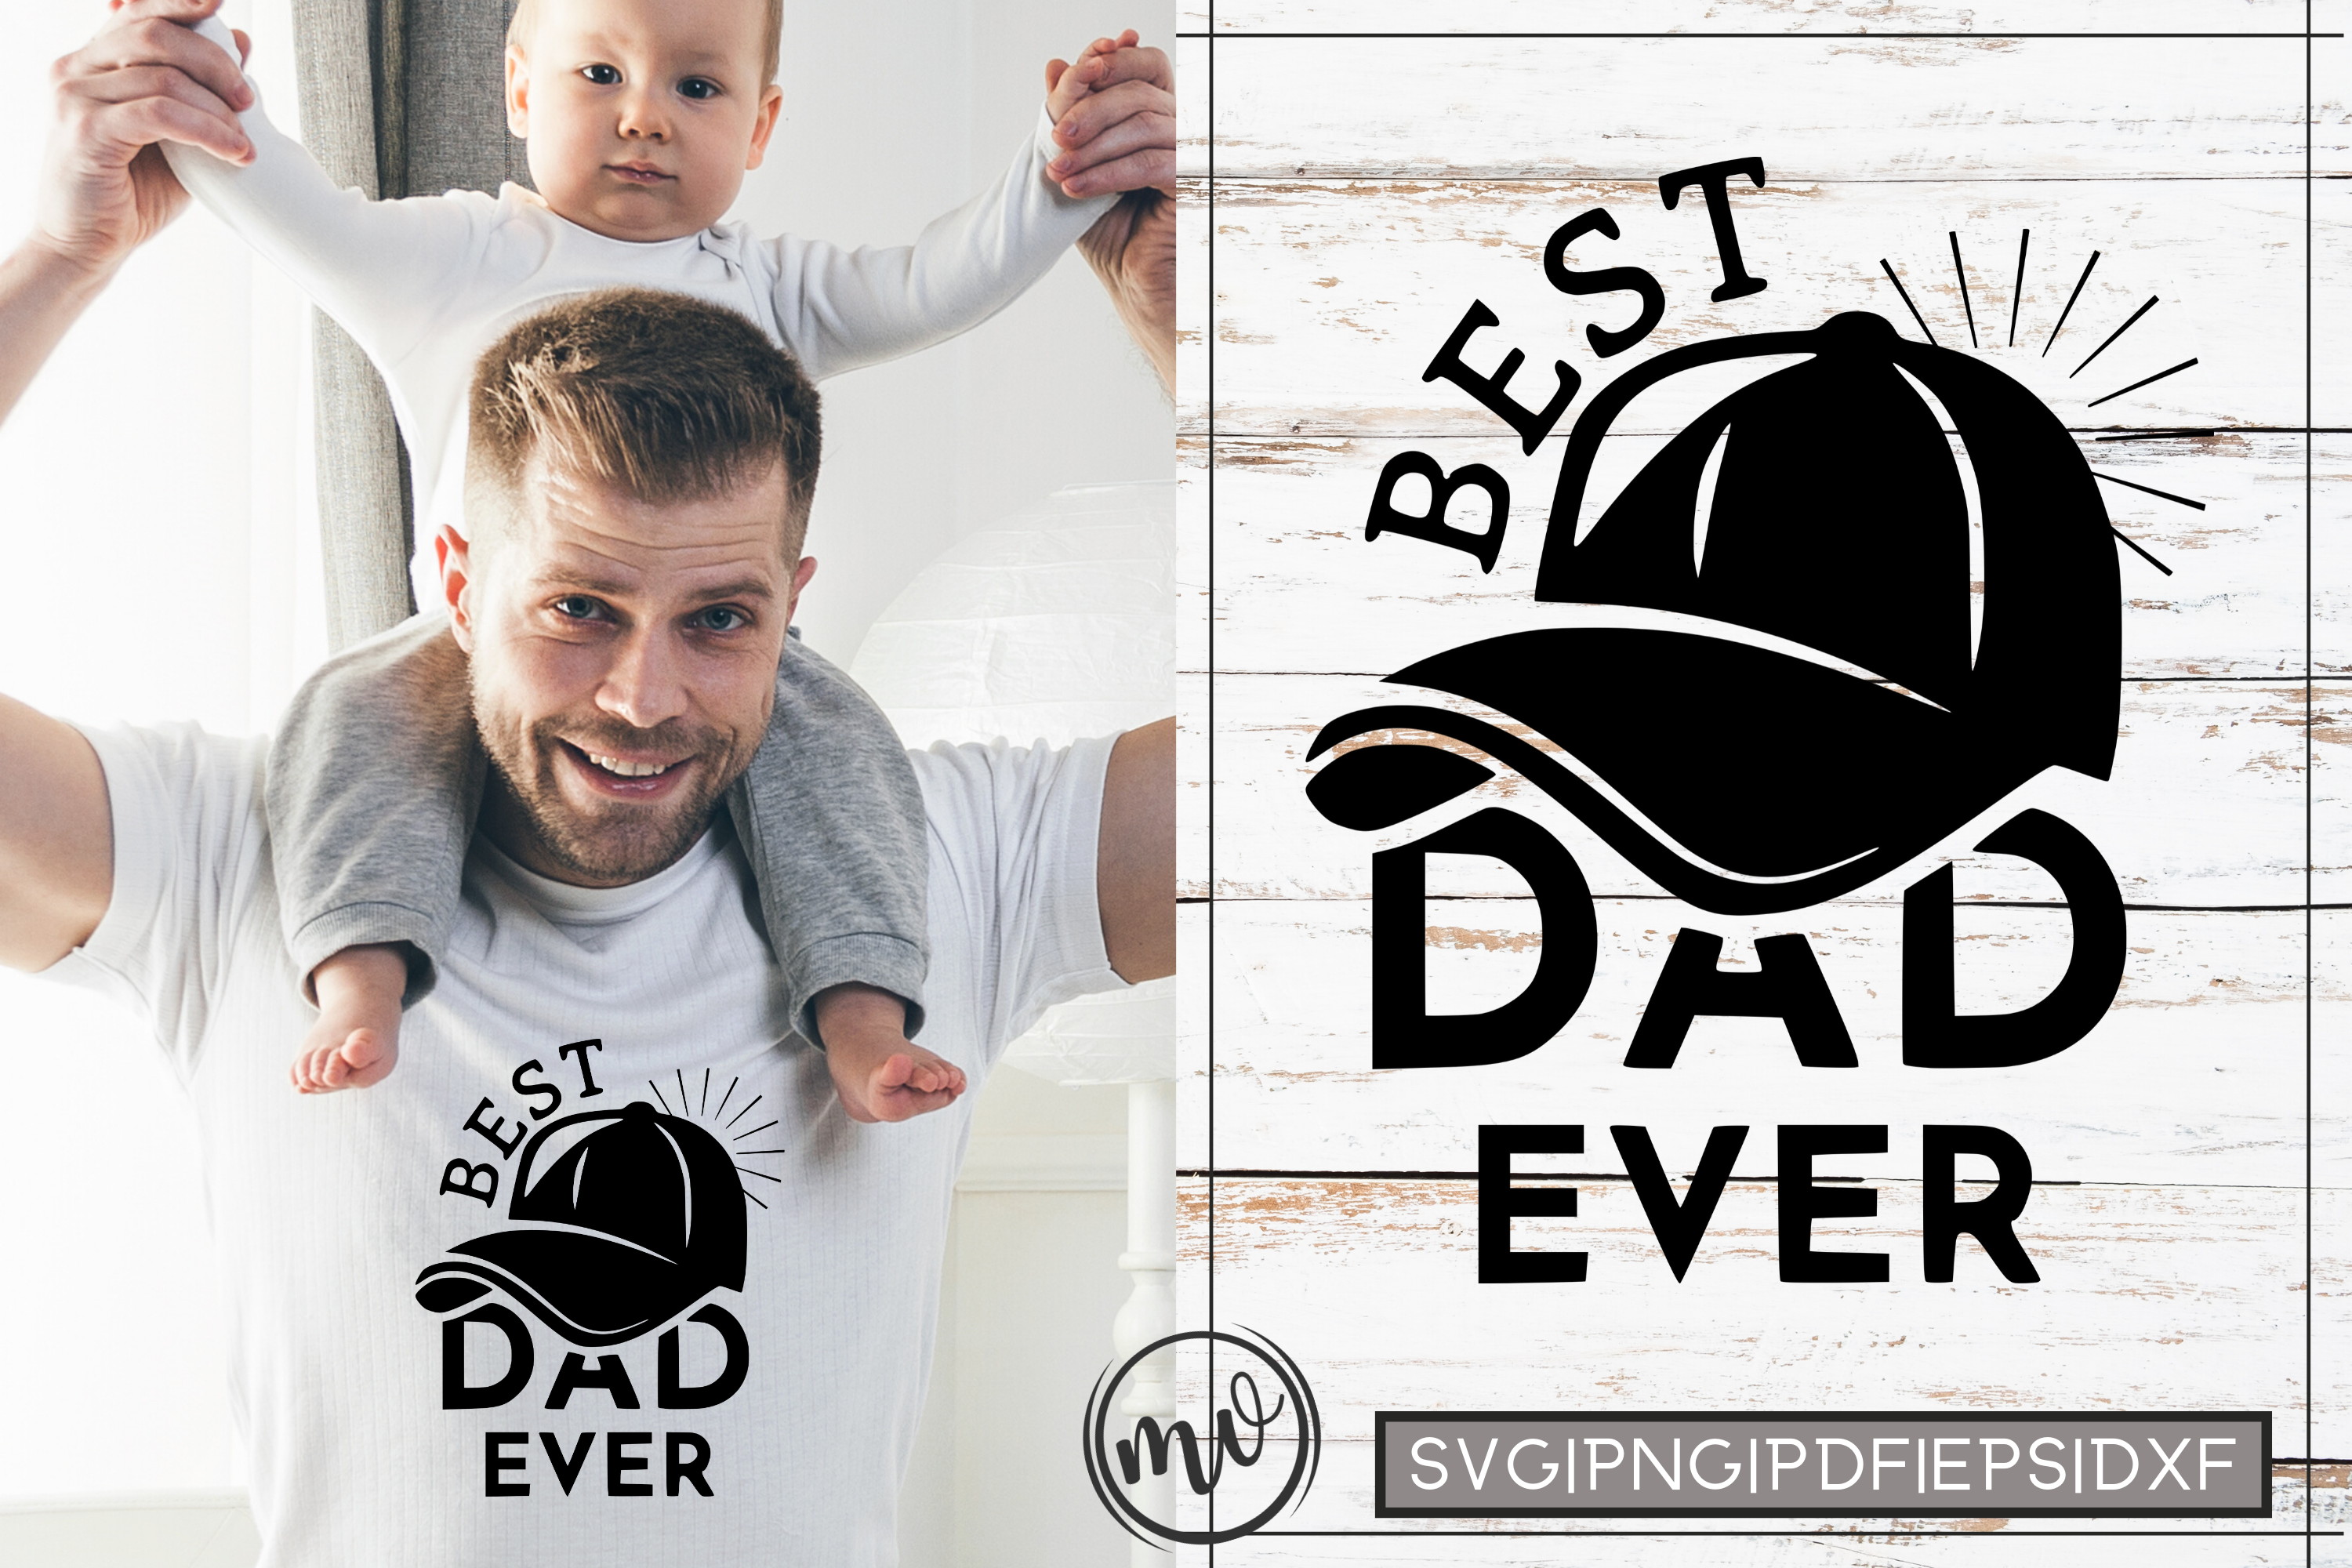 Best Dad Ever Father S Day Quote Graphic By Mockup Venue